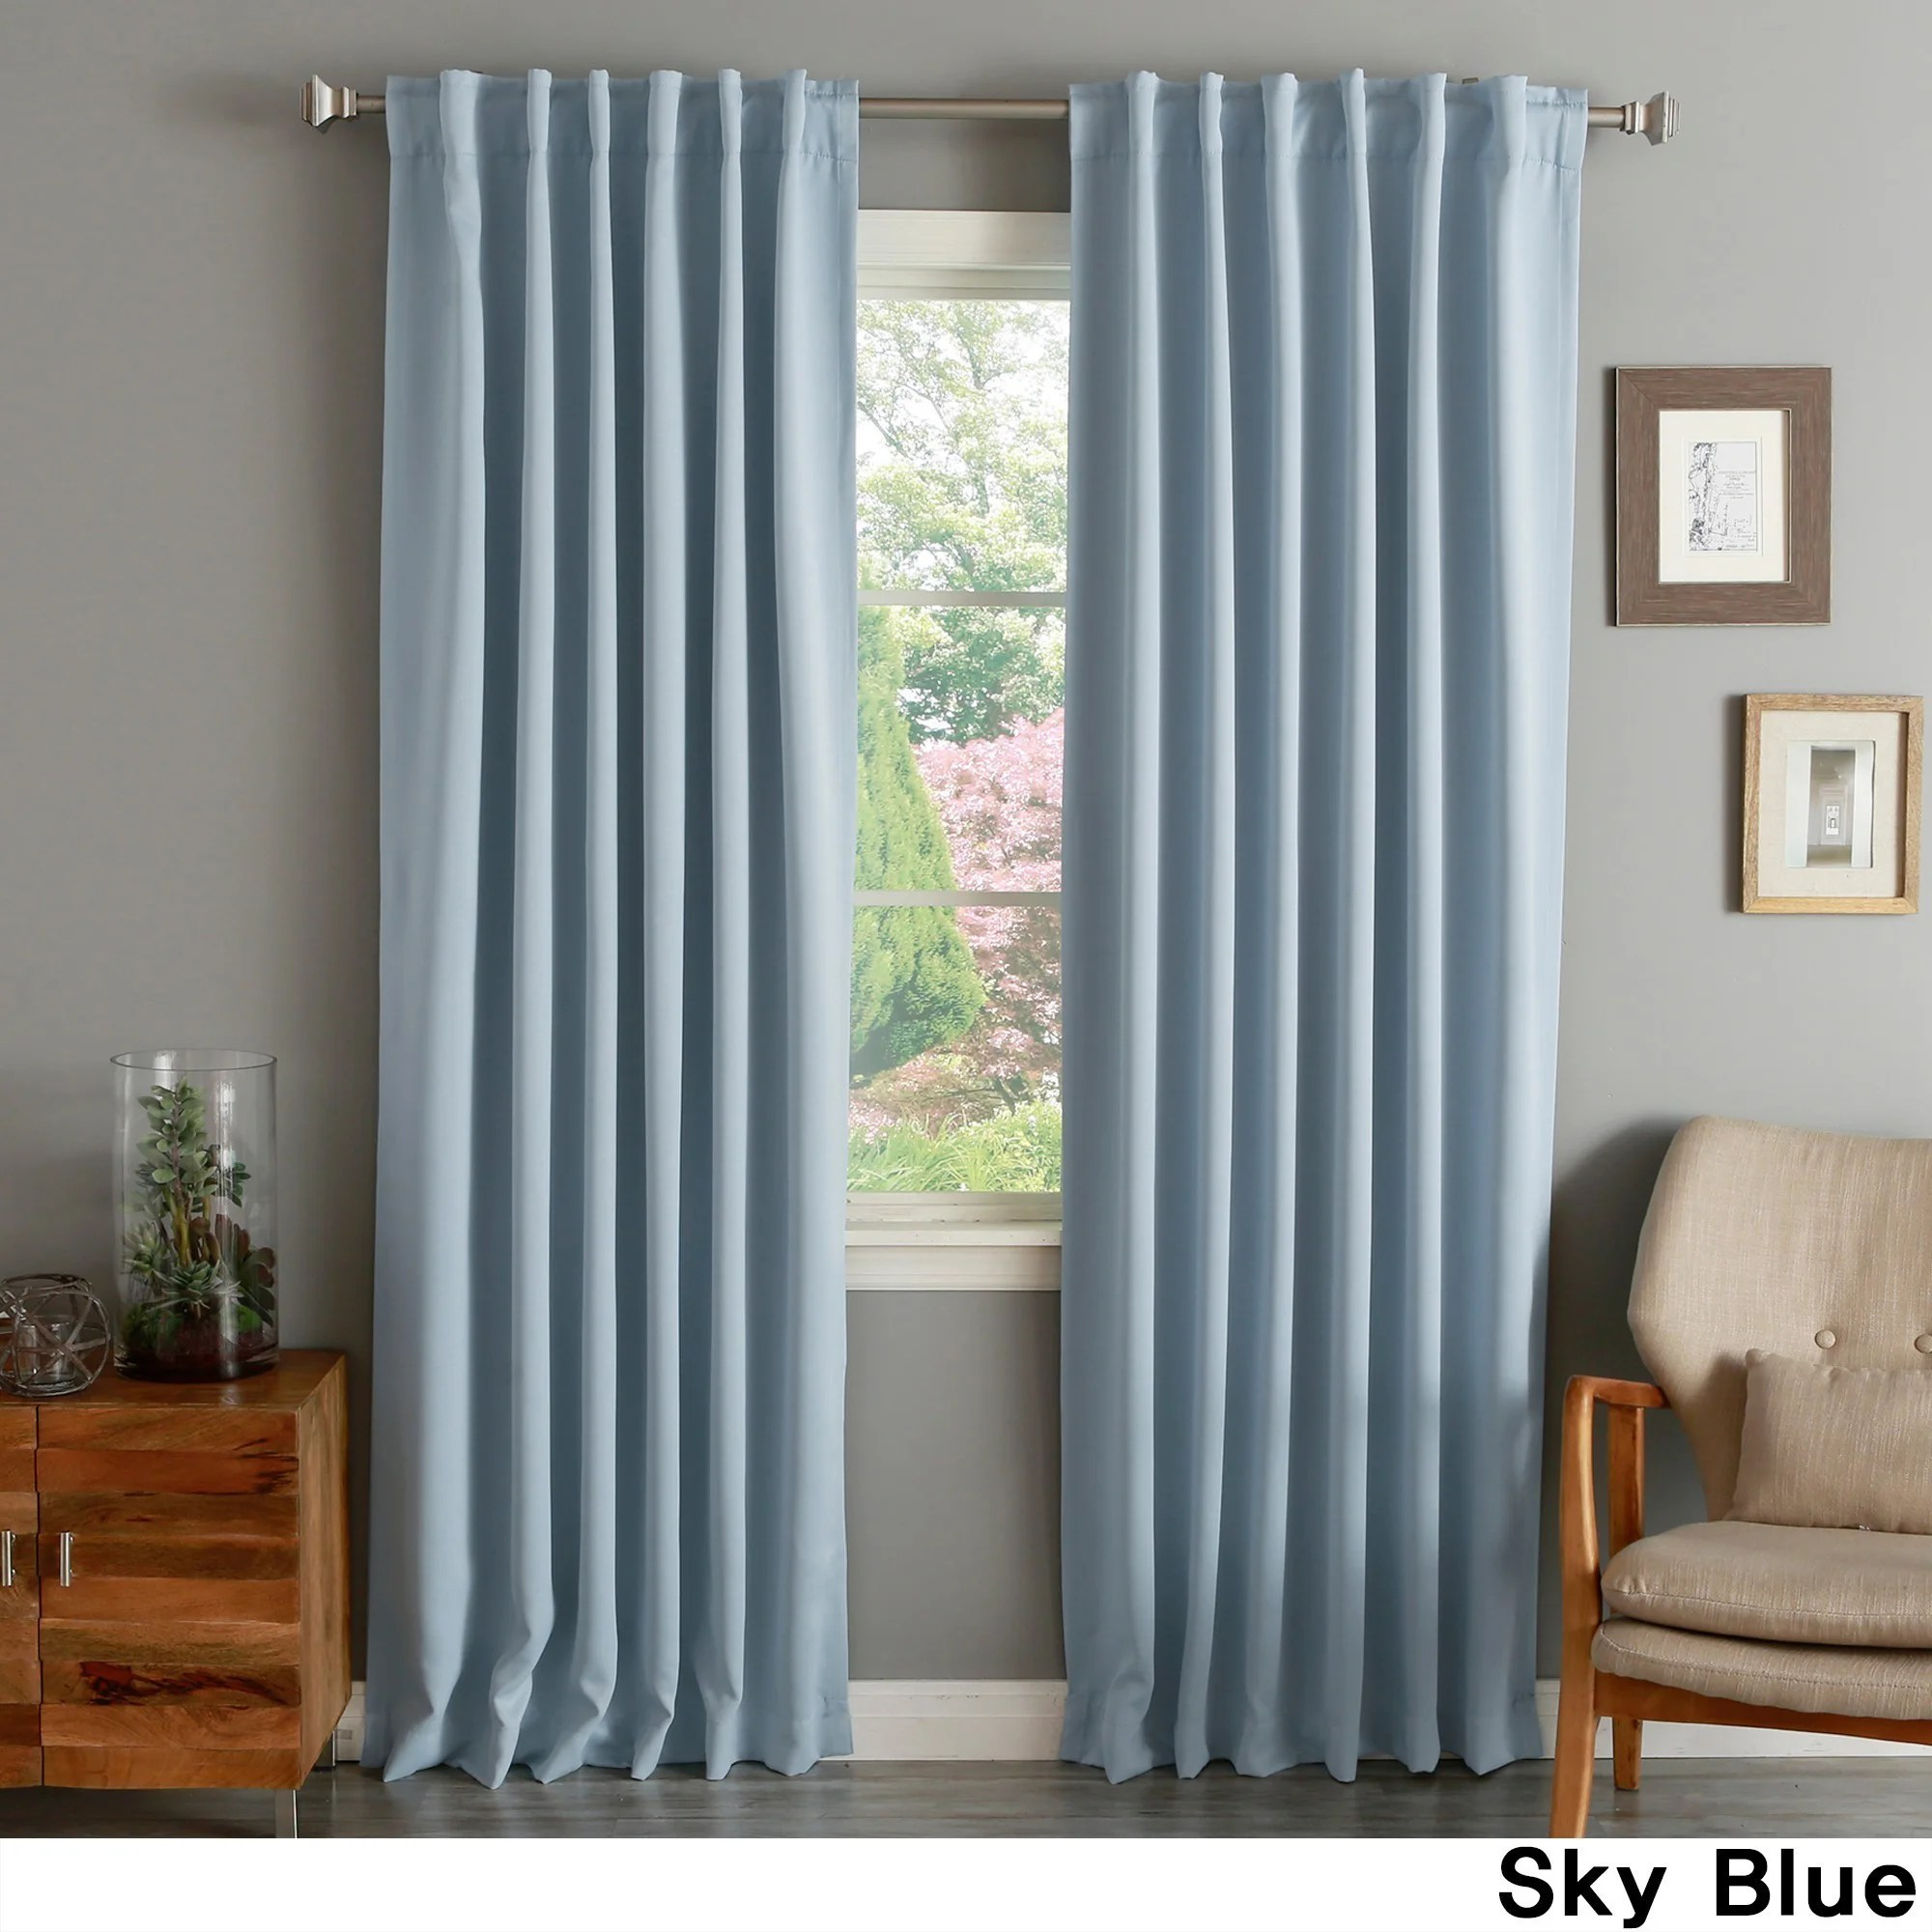 Teal Blackout Curtains Aurora Home Solid Thermal Insulated 108 Inch Blackout Curtain Panel Pair 52 X 108